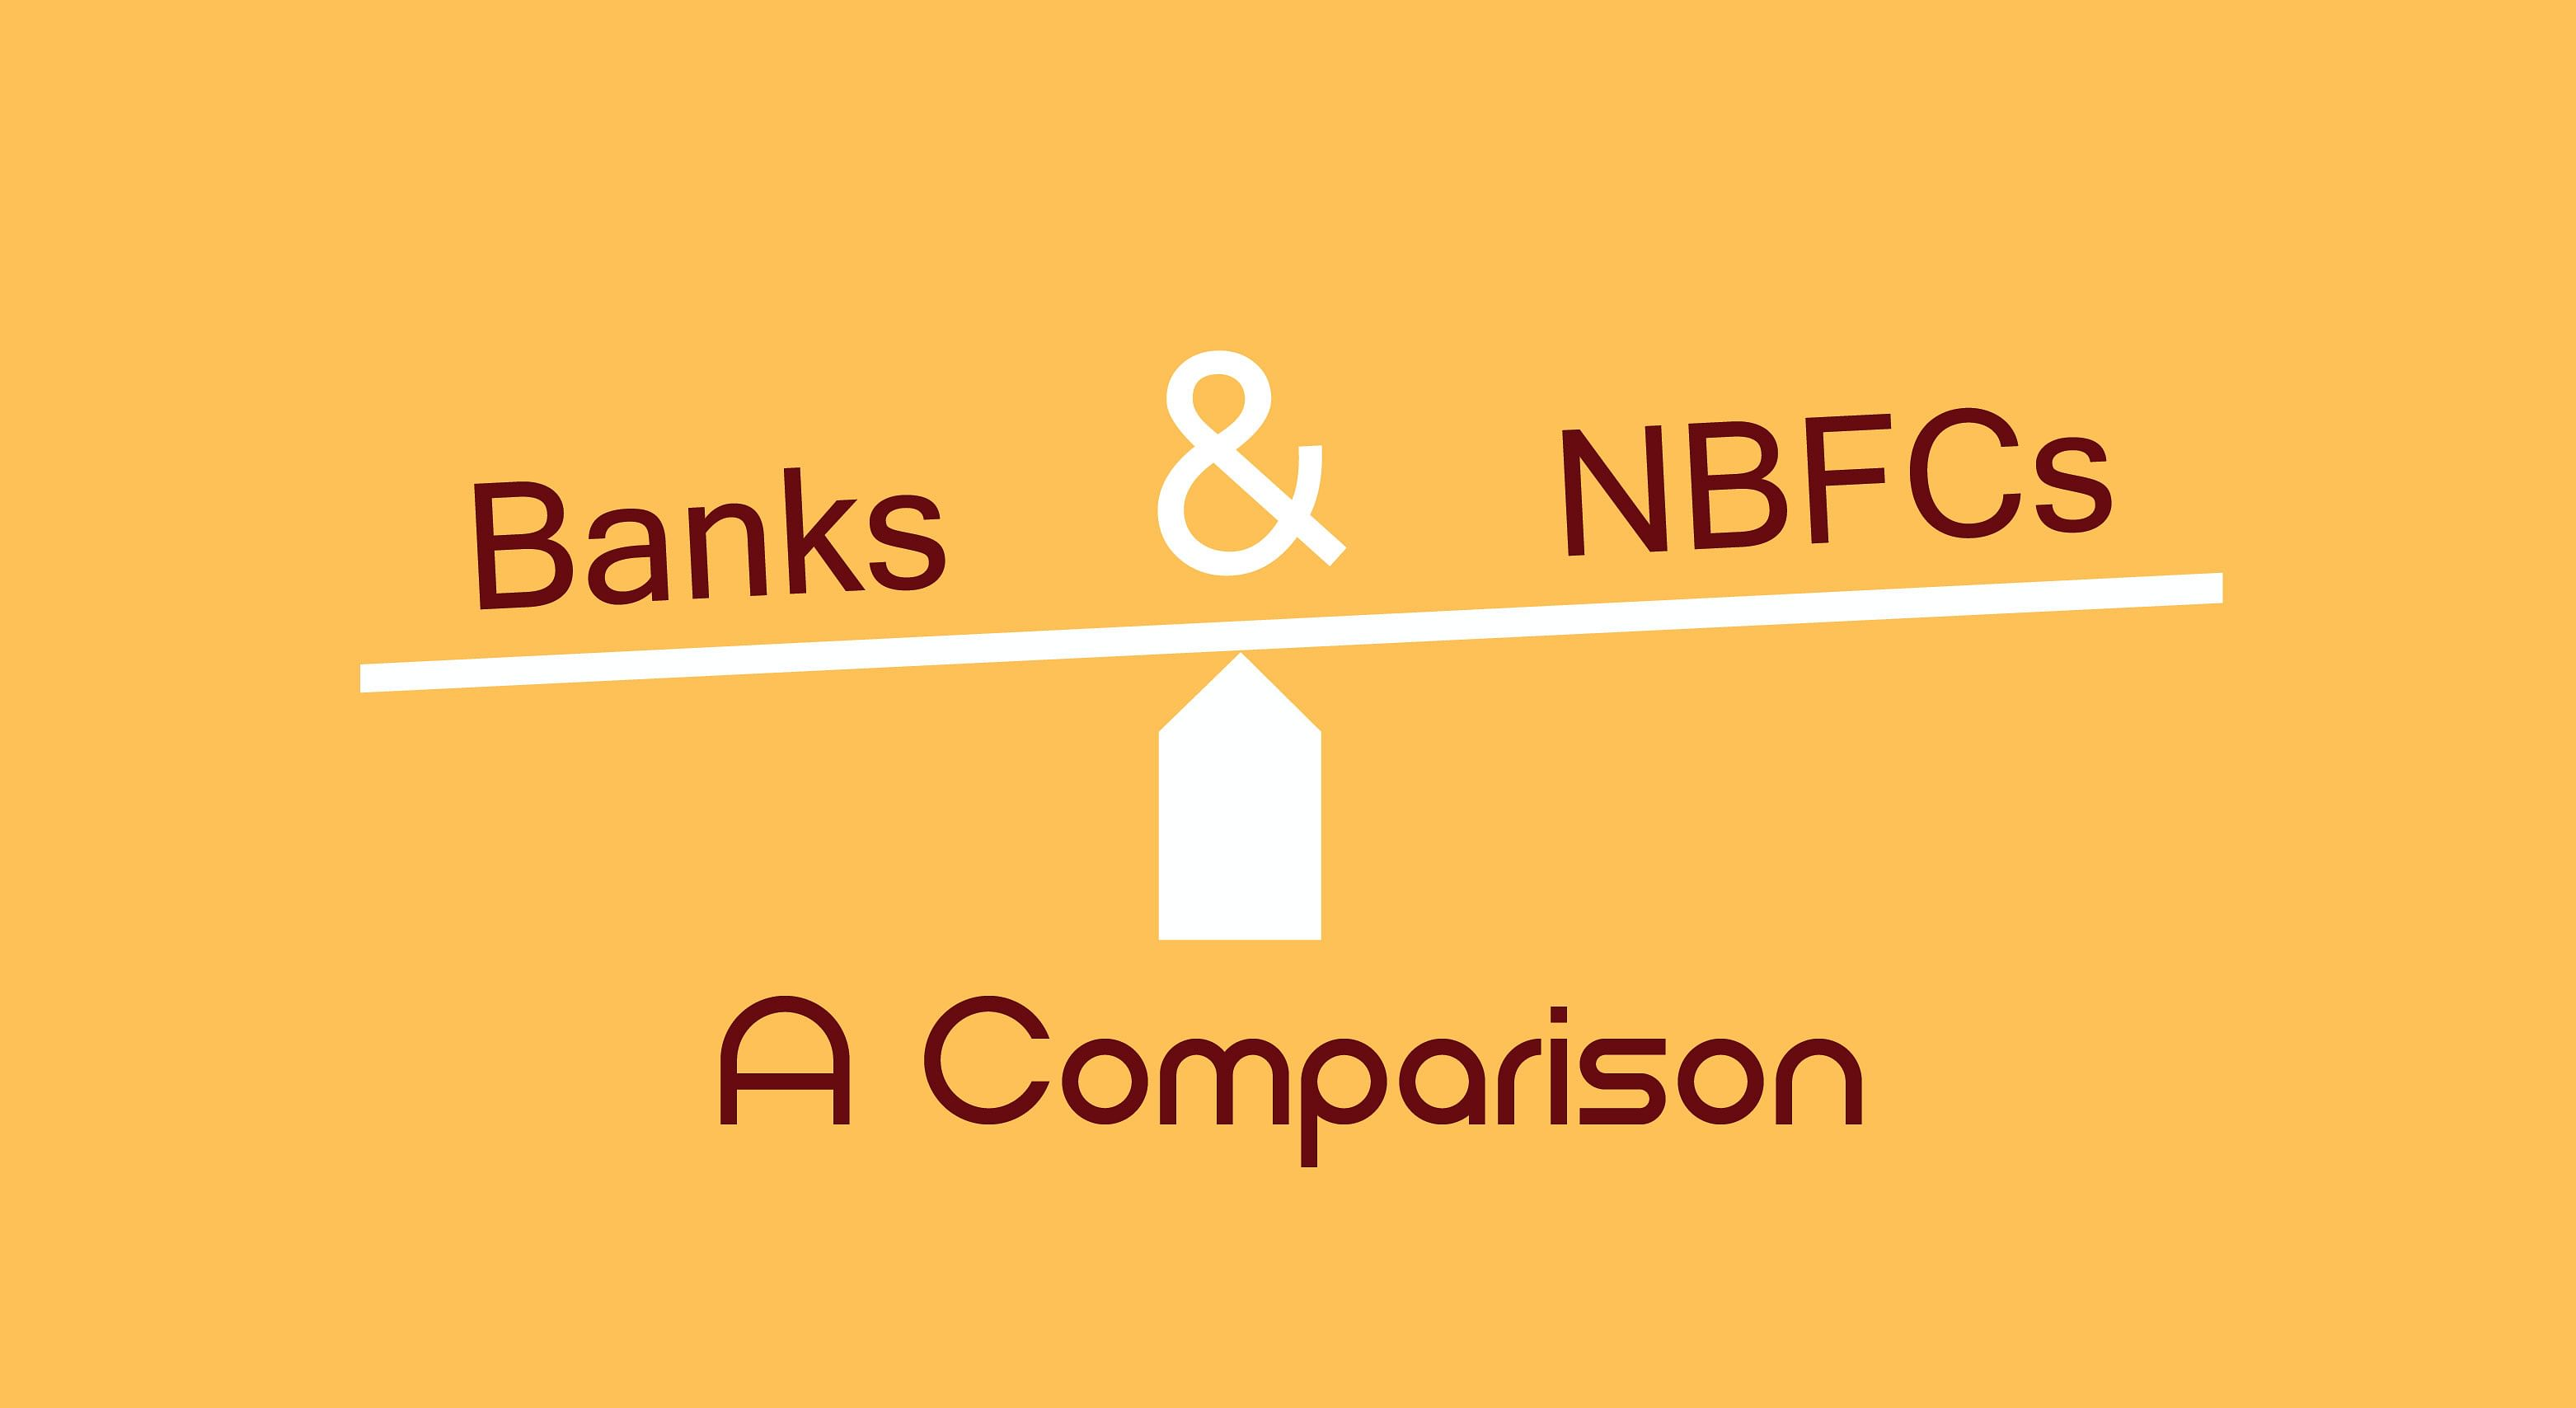 NBFC business loan